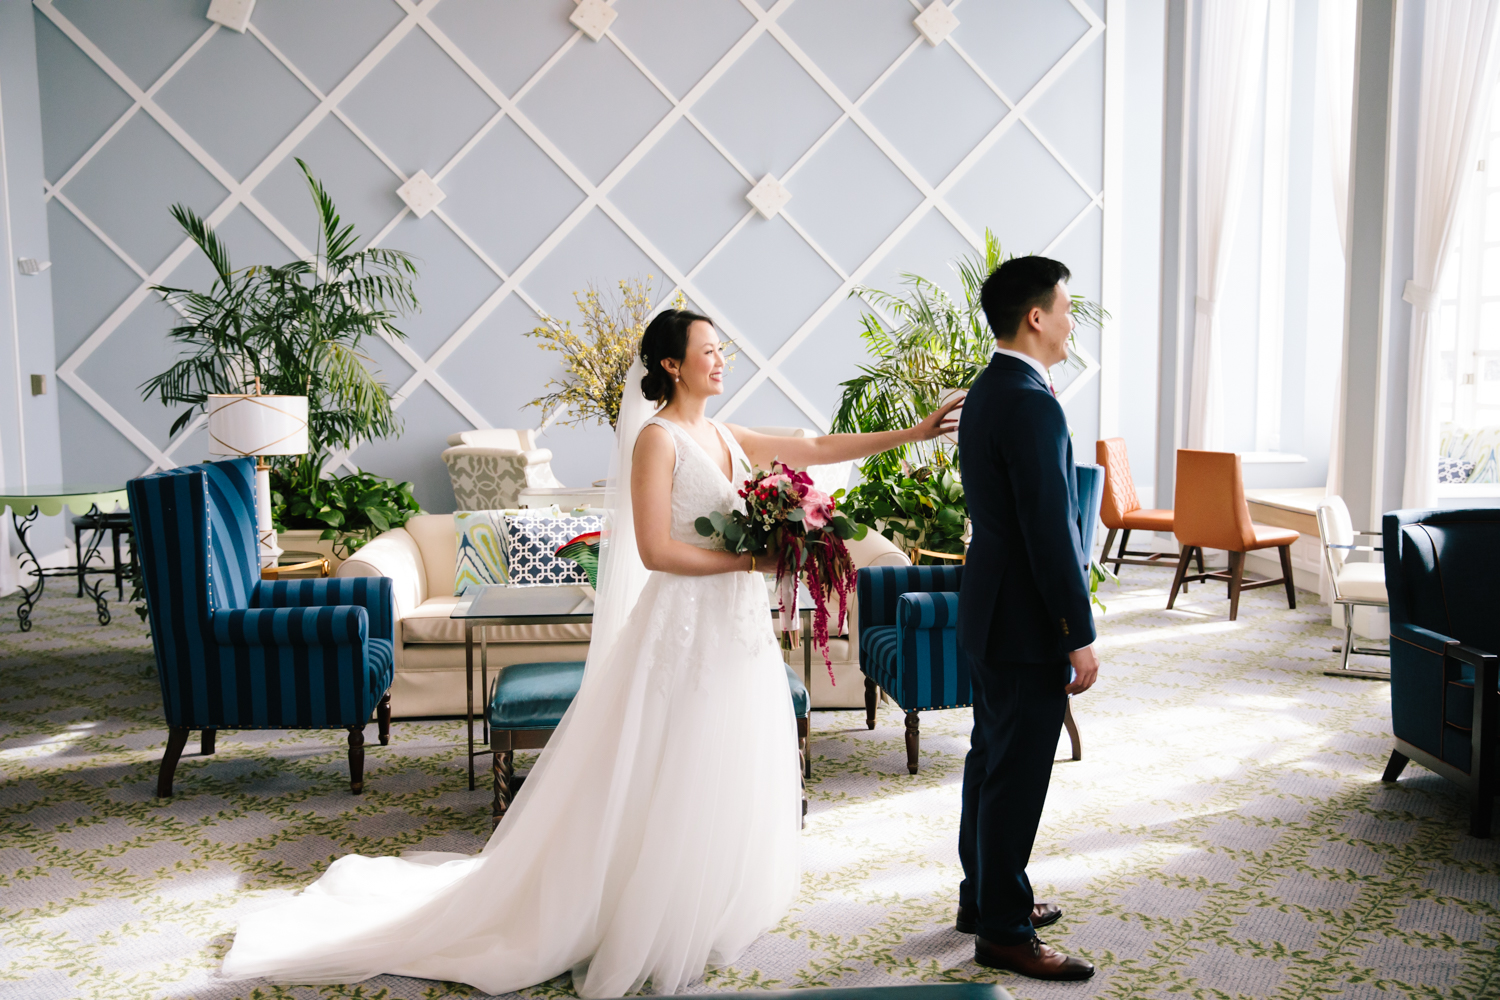 Colleen & Alex - The Portofino Hotel & Marina - Redondo Beach, CA